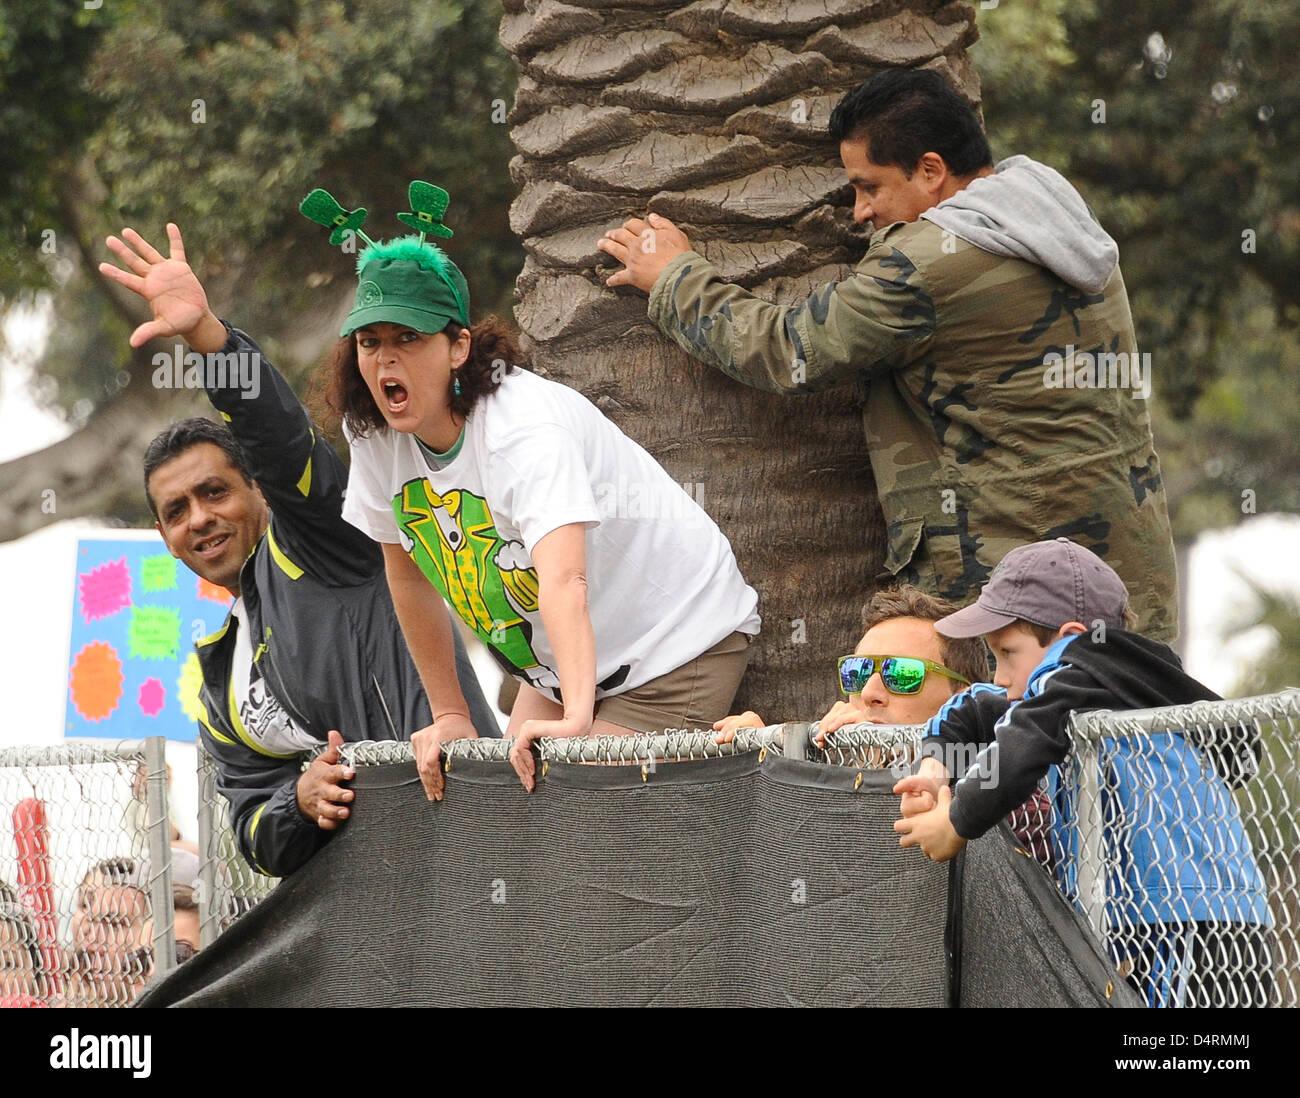 March 17,2013. Santa Monica Calif. USA  Friends and family members watch the runners at the finish line during the - Stock Image